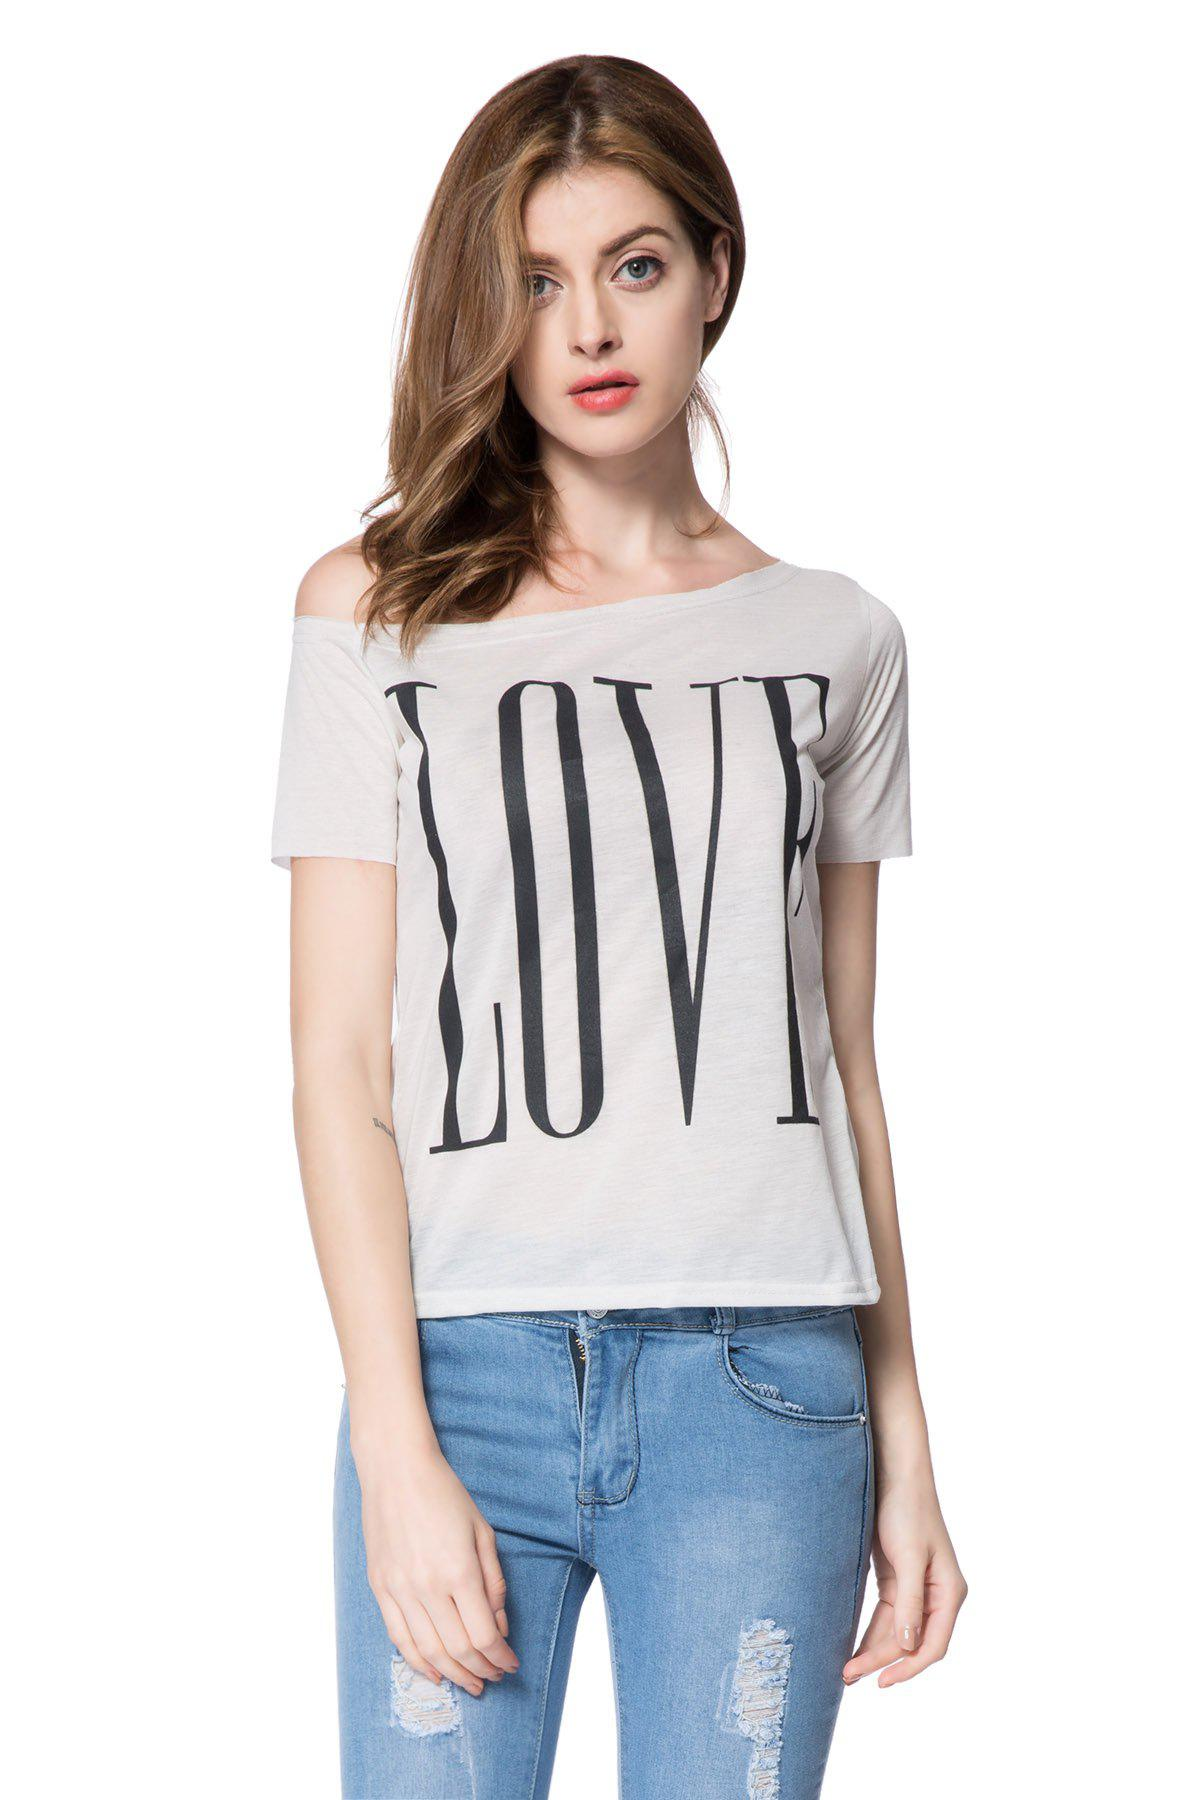 Stylish One-Shoulder Letter Print Short Sleeve Women's T-Shirt - WHITE S